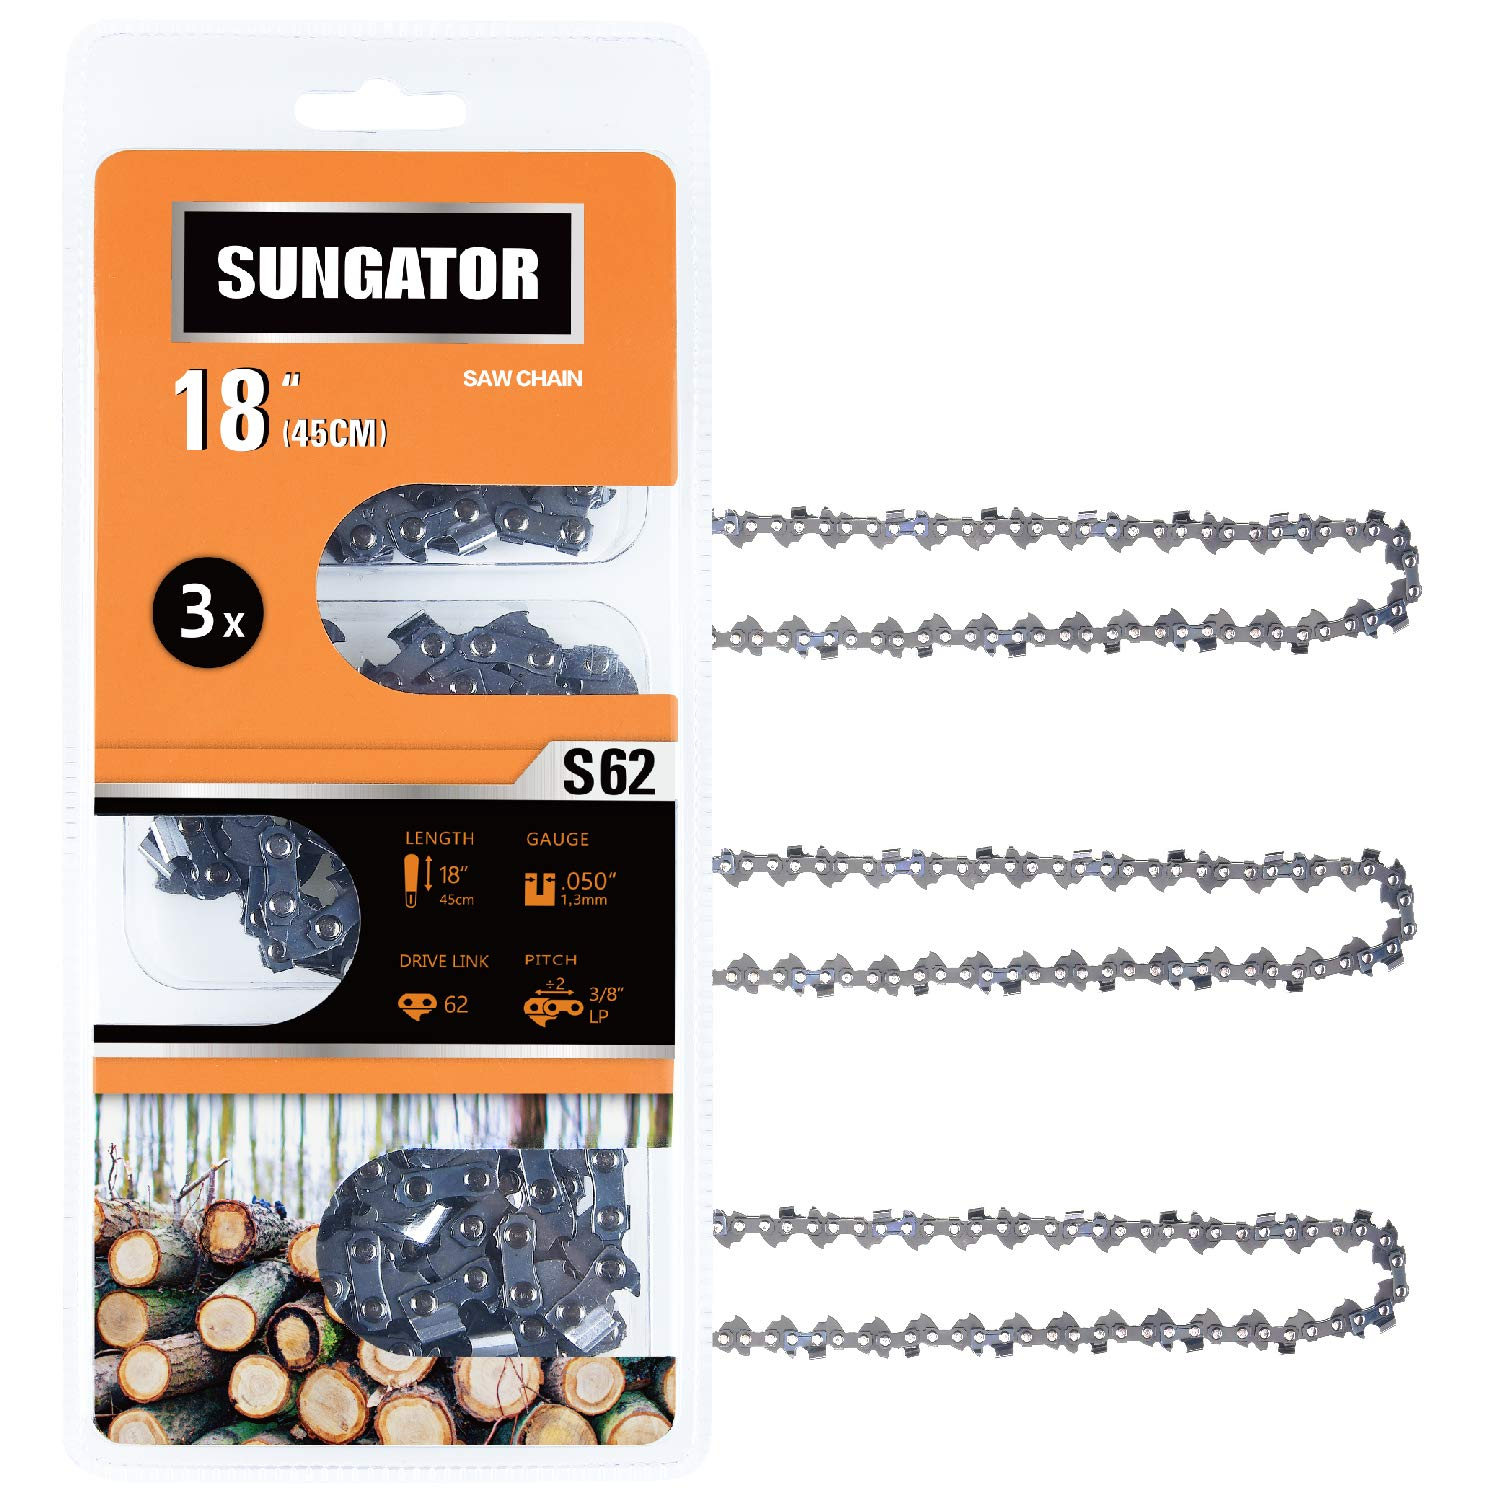 Sungator Saw Chain